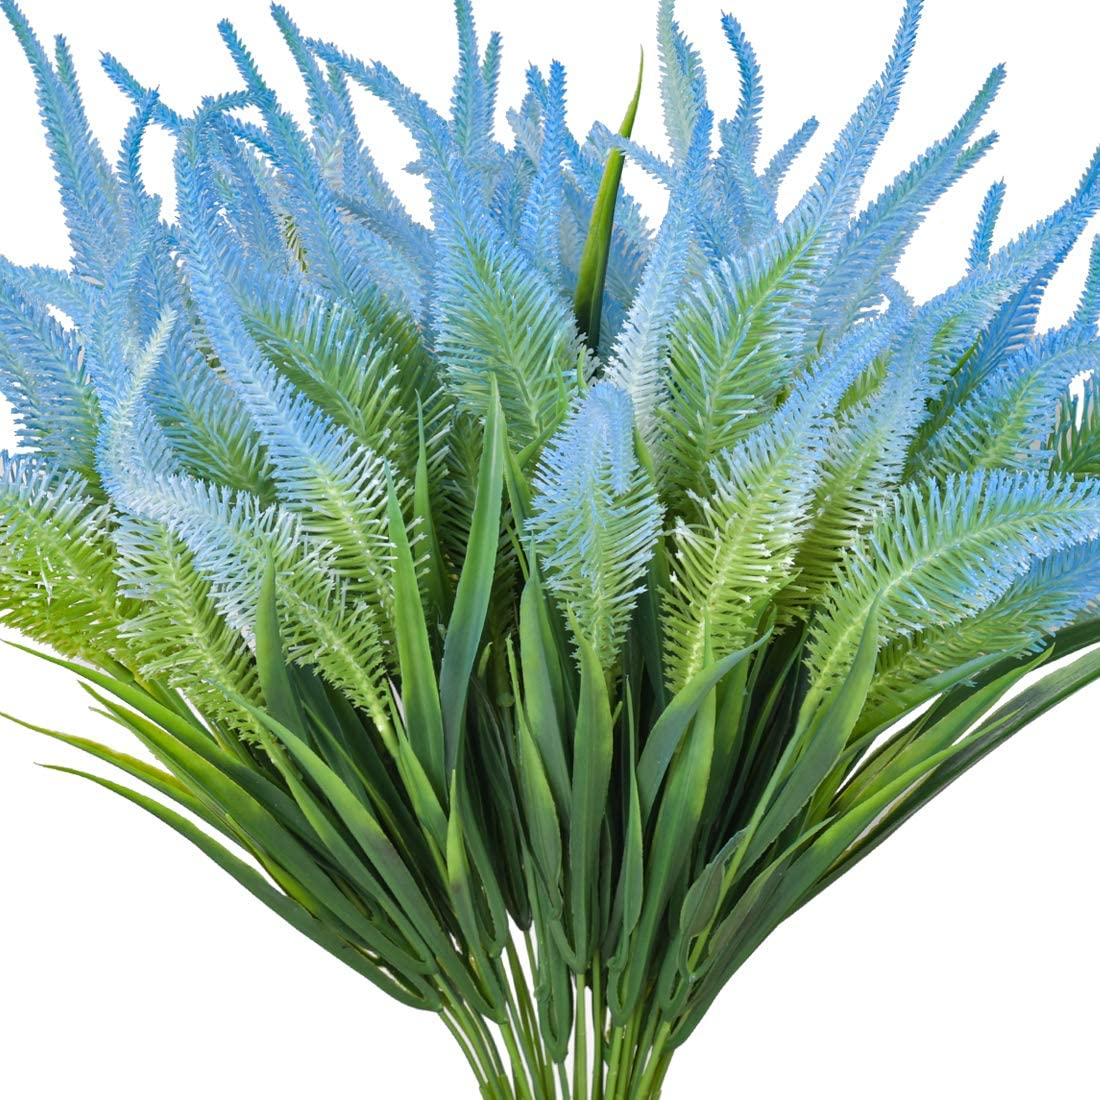 Artificial Fake Flowers, 6 Bundles Large UV Resistant Faux Plastic Greenery Foliage Plants Shrubs for Garden, Wedding, Outside Hanging Planter, Farmhouse Indoor or Outdoor etc Decor